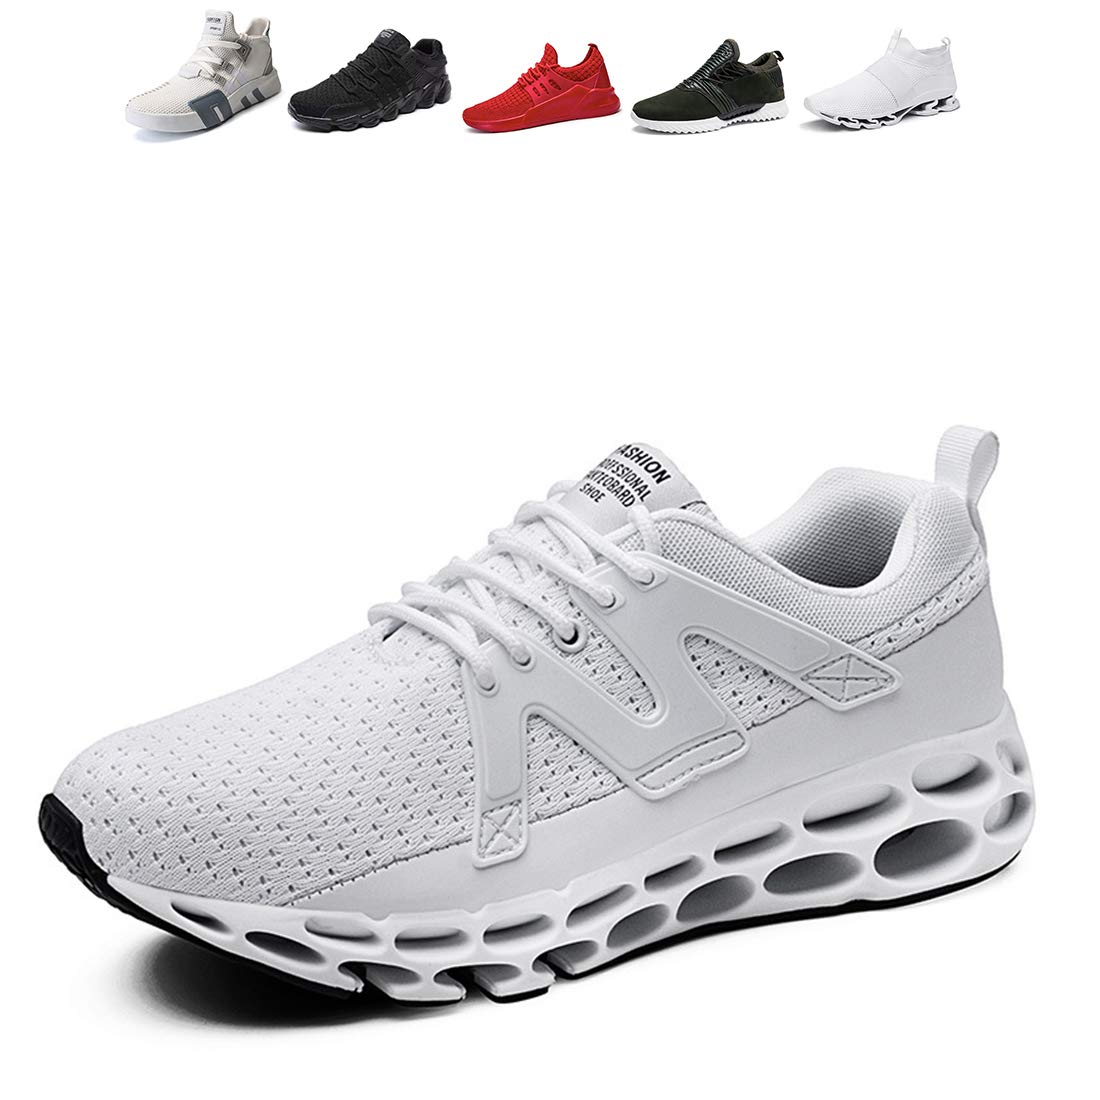 Oumanke Men Sports Running Shoes Breathable Sneakers Hiking Jogging Fishing Yoga Traveling White9 US7